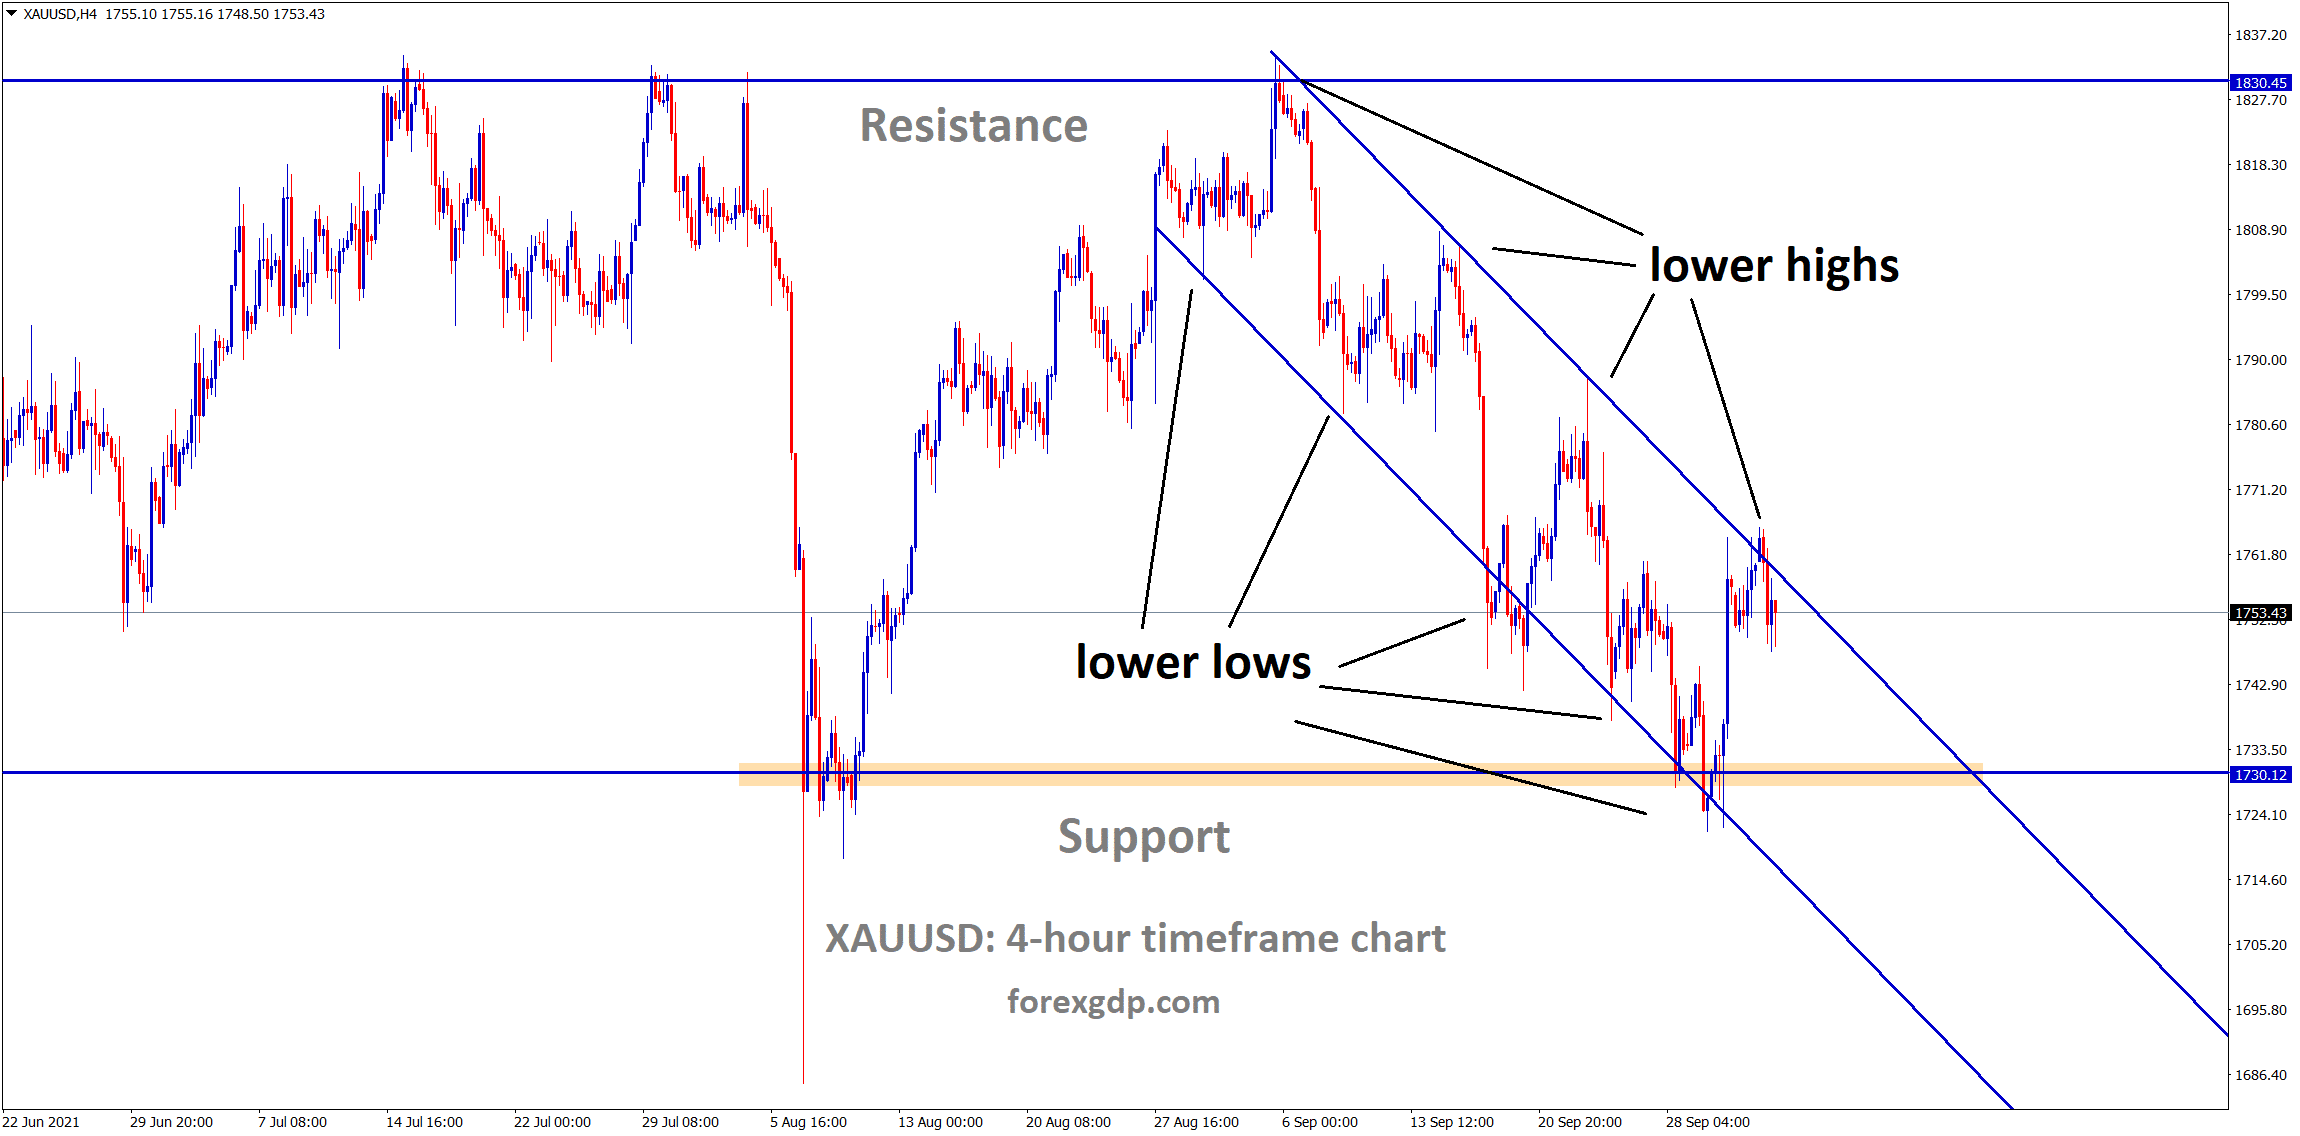 Gold is still consolidating at the lower high level of a descending channel wait for breakout from this channel level